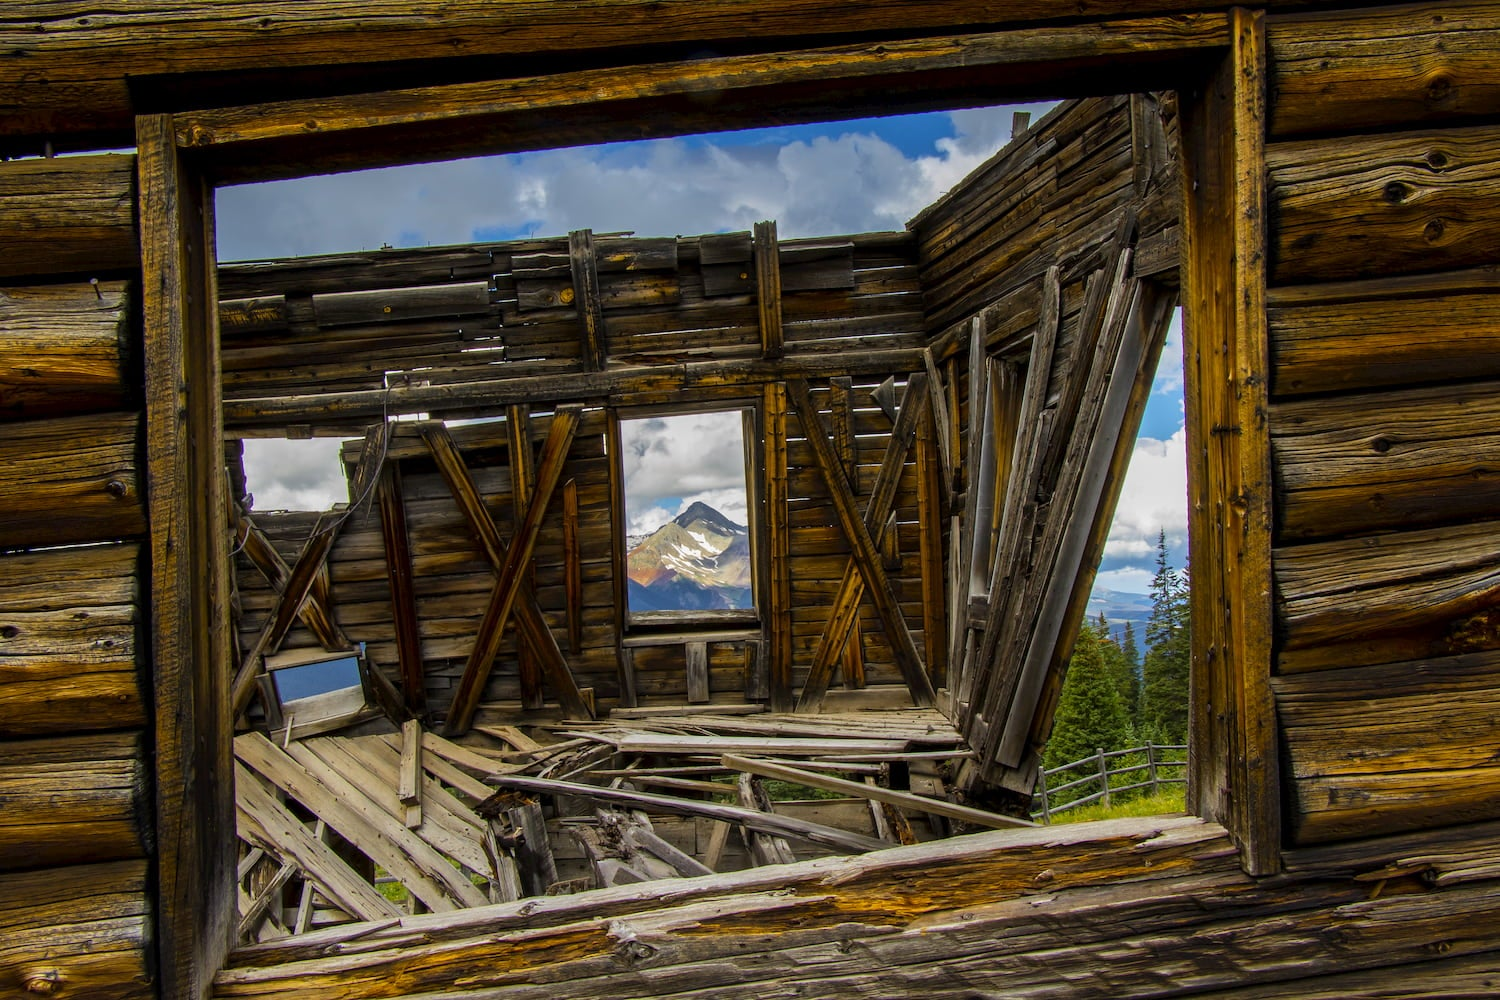 Telluride in Colorado's San Juan Mountains, summer - abandoned mining structure at ghost town of Alta with Wilson Peak viewed through window.